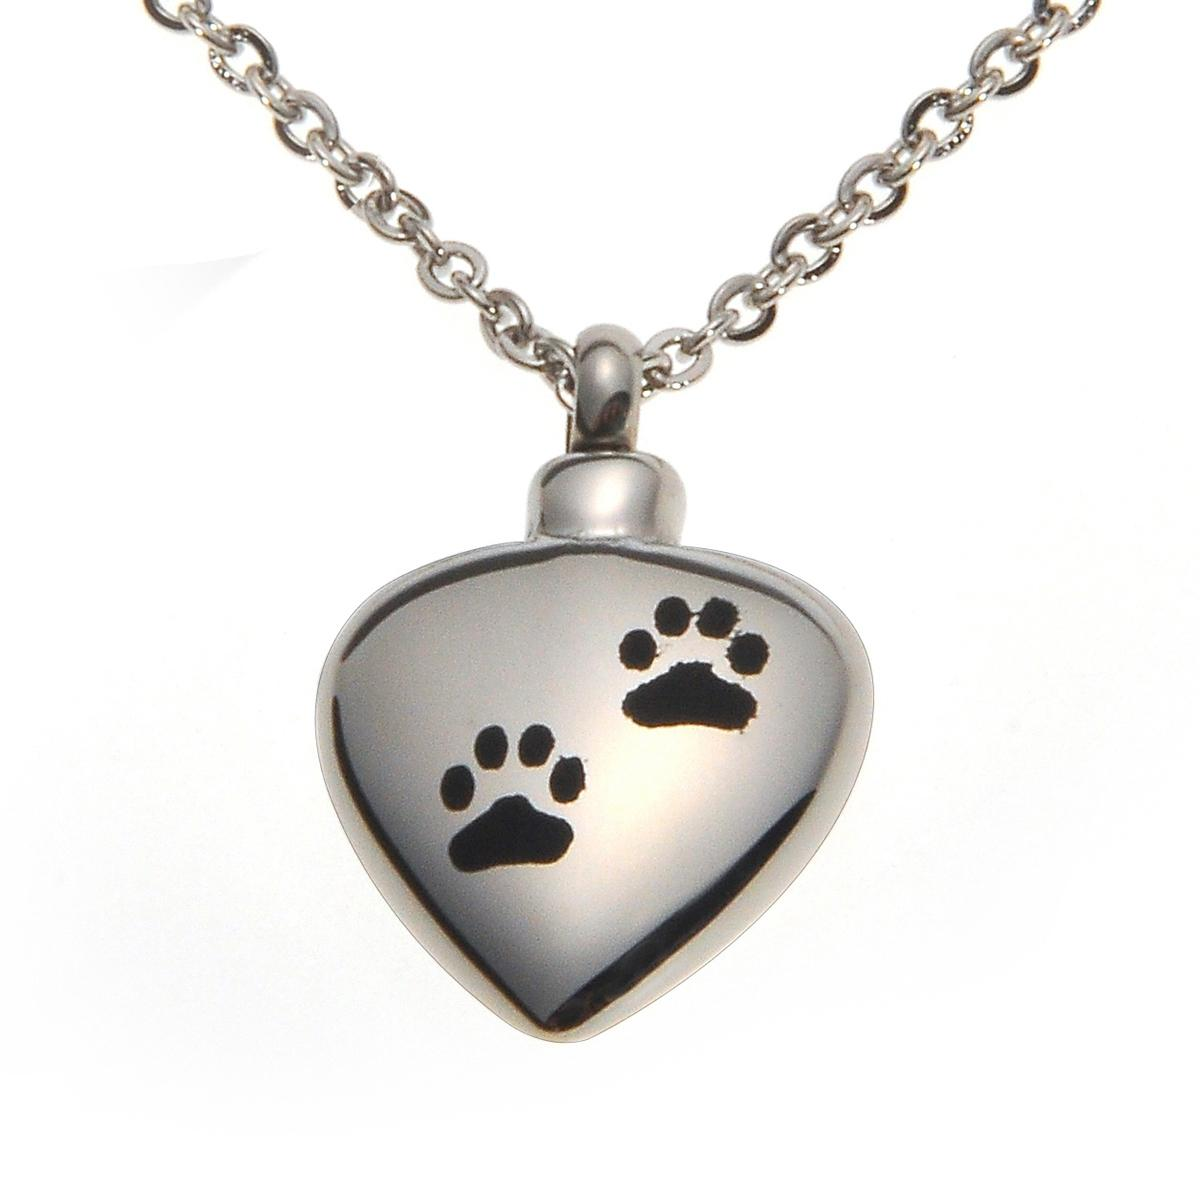 Stainless Steel Pet Dog/Cat Paw Waterproof Cremation Urn Necklace Ash Memorial Jewelry with gift bag and chain